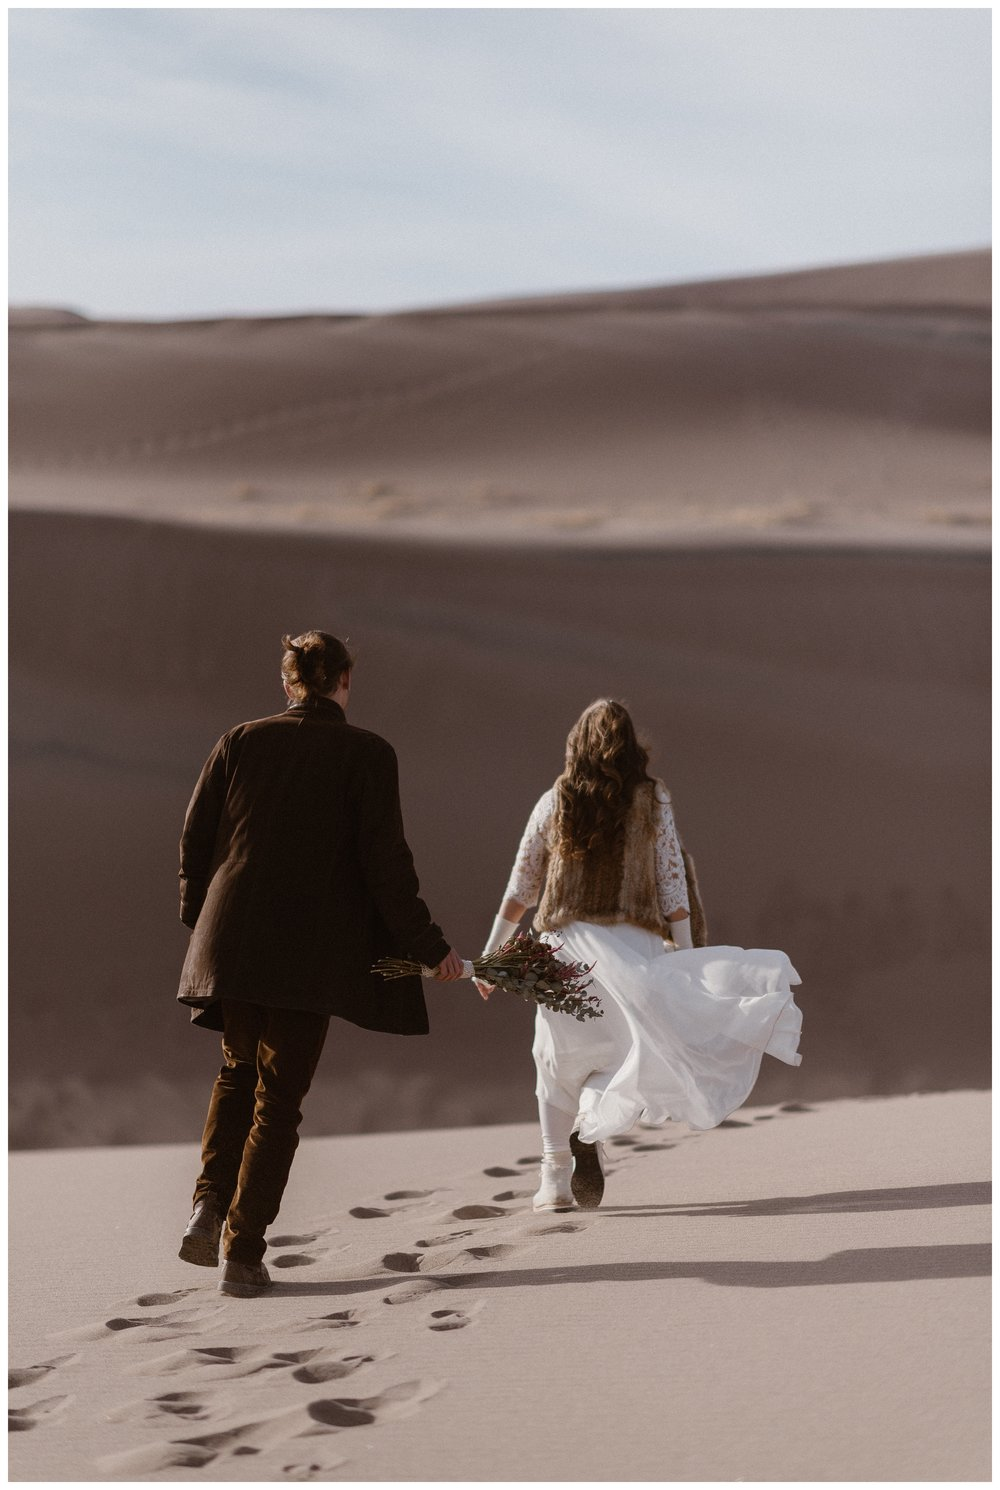 The wind blows Olivia's white bridal skirt as she walks along Great Sand Dunes National Park during a winter adventure elopement. Photo by Maddie Mae Photo, Adventures Instead.